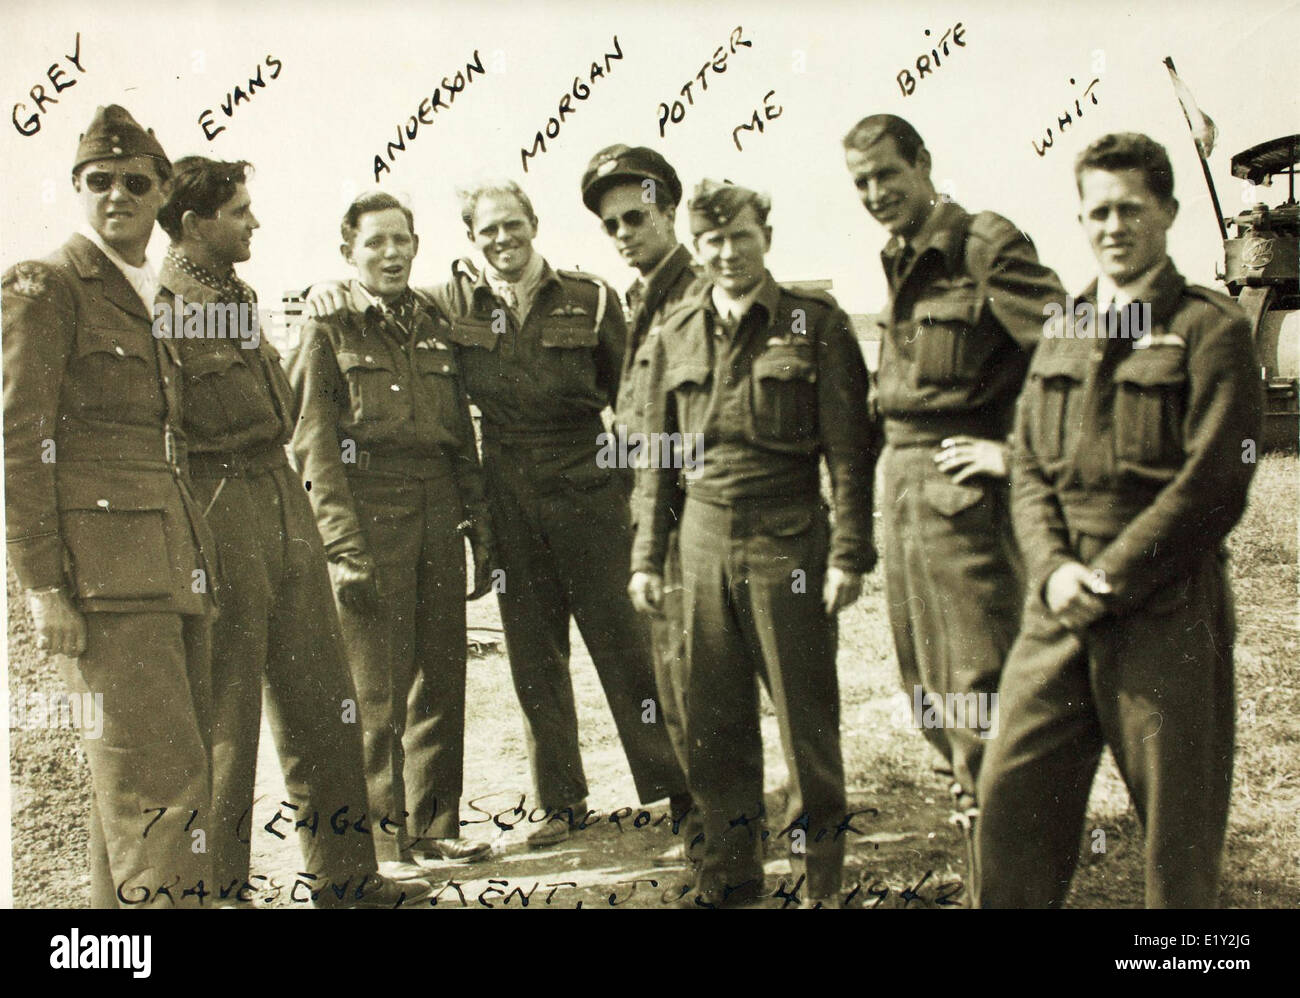 71 Eagle Squadron R A F  July, 4 1942 Stock Photo: 70050920